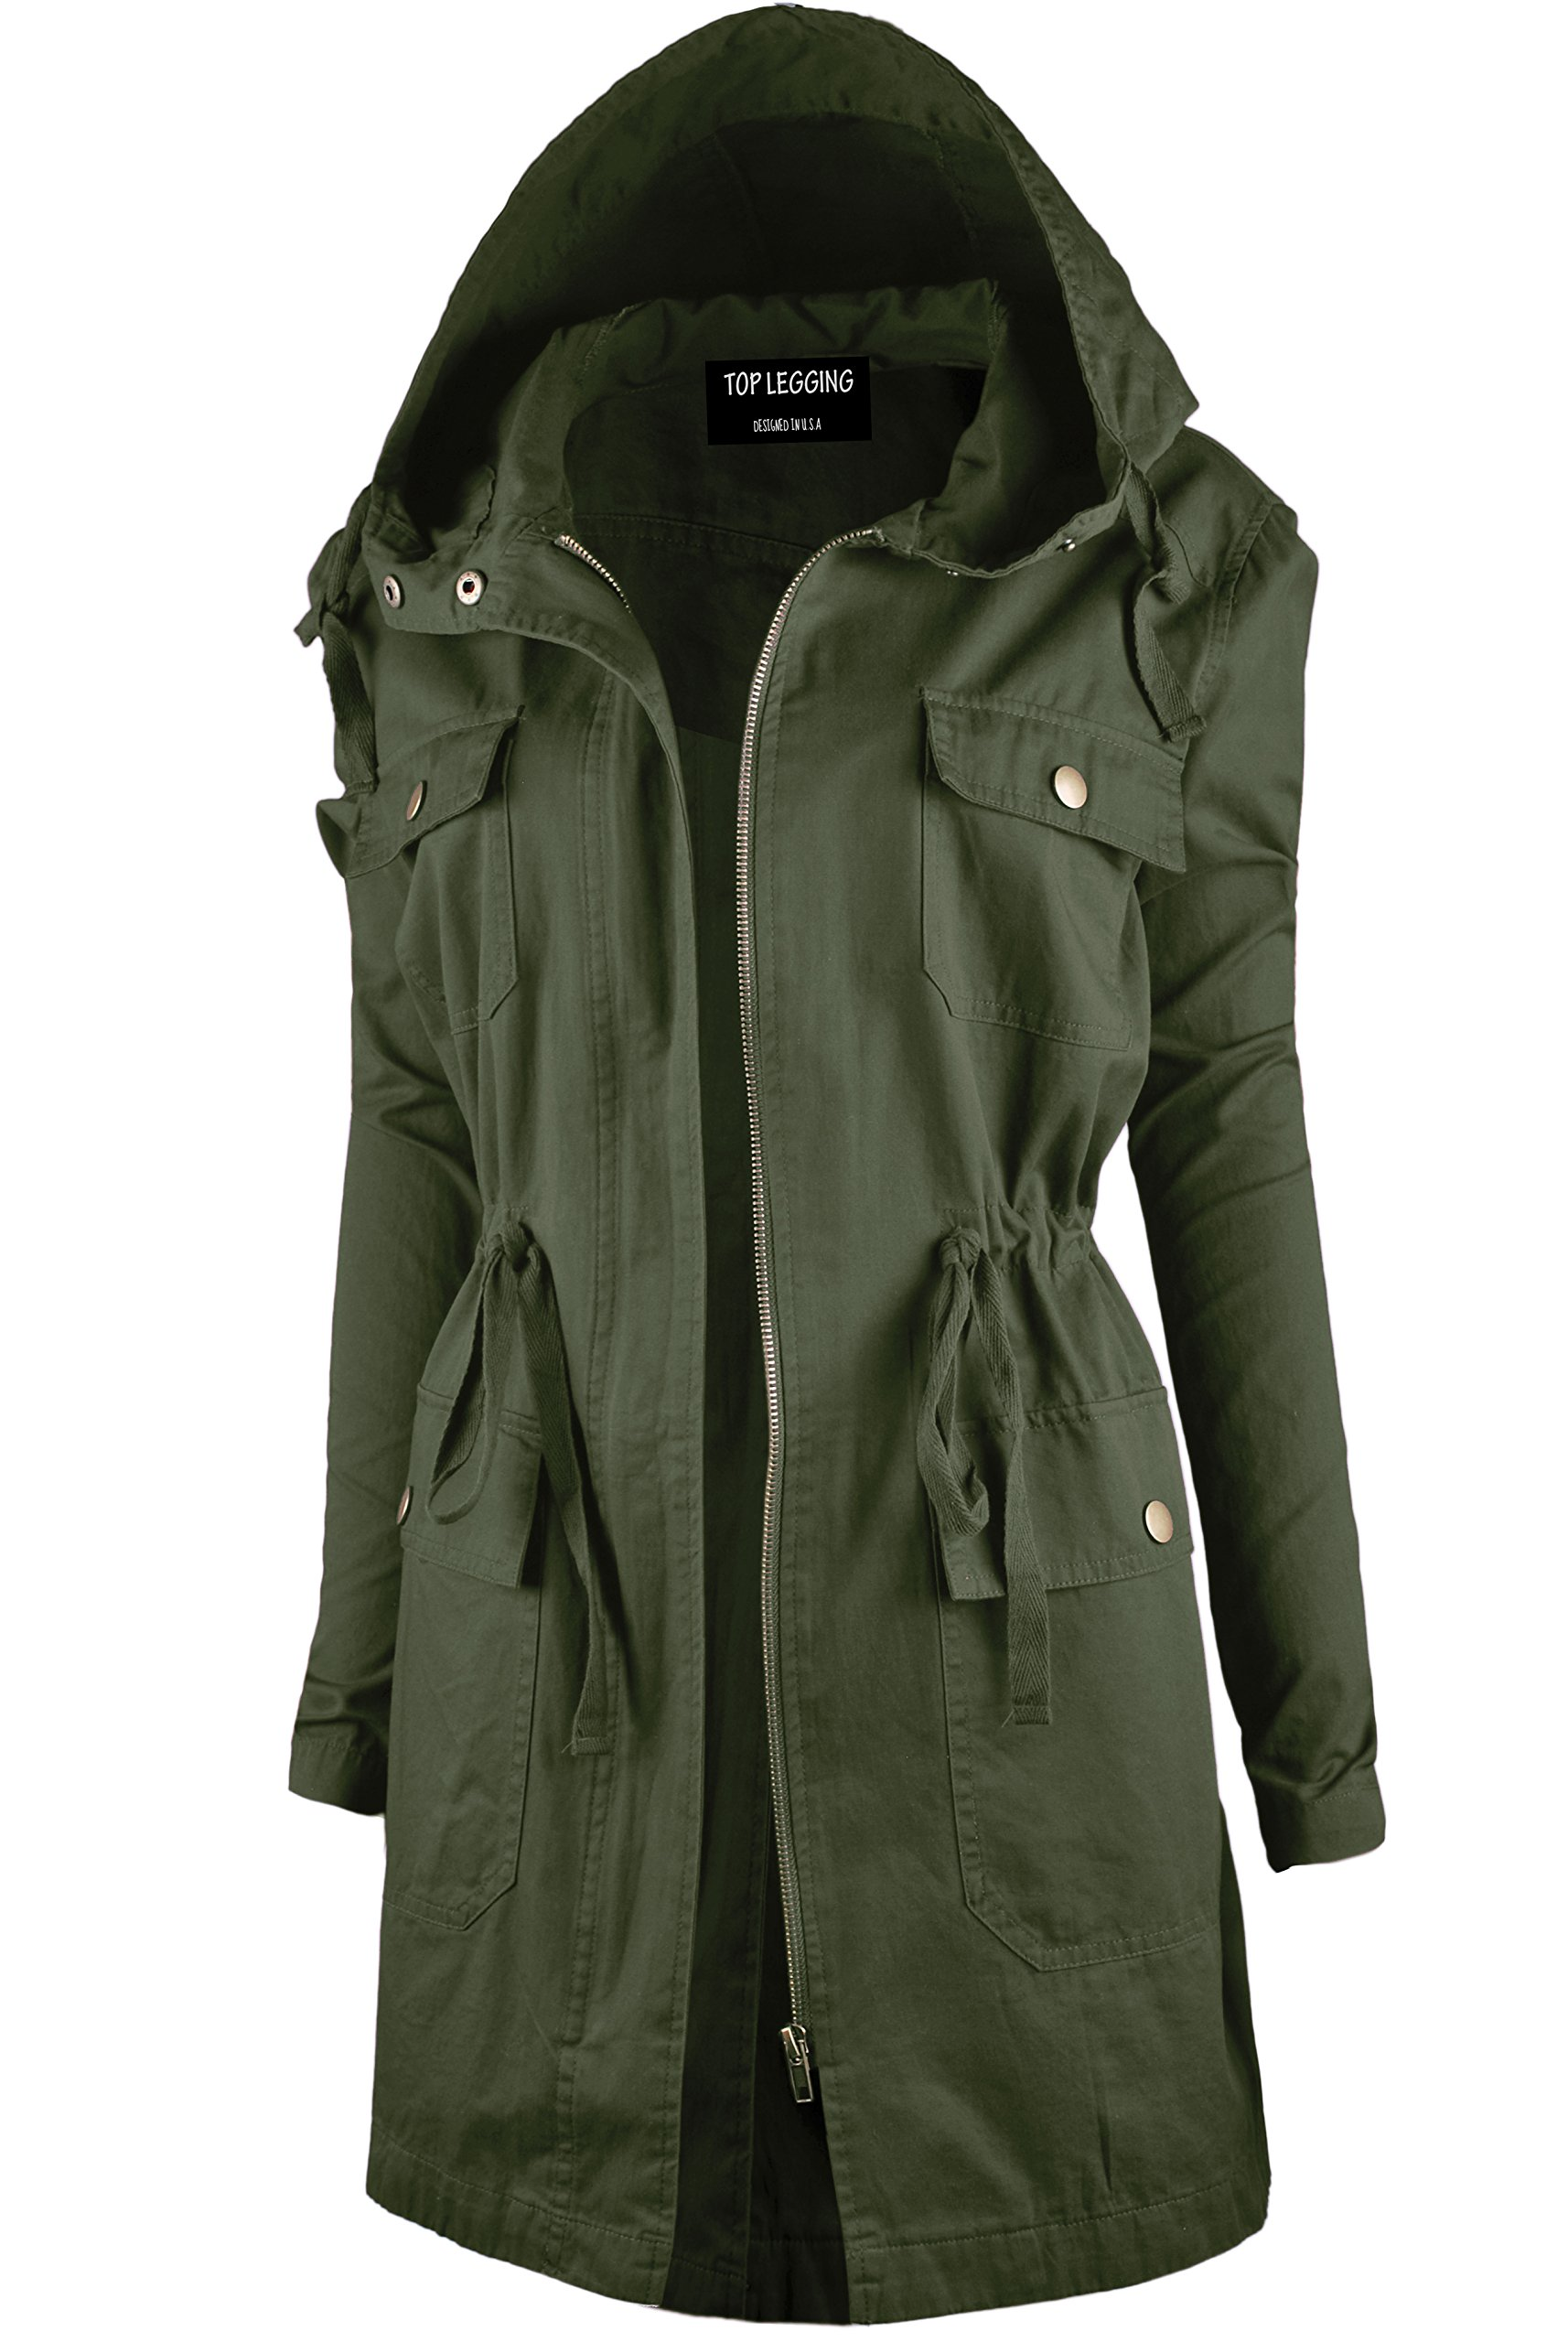 TL Women's Versatile Militray Anorak Parka Hoodie jackets with Drawstring J44 OLIVE 1XL